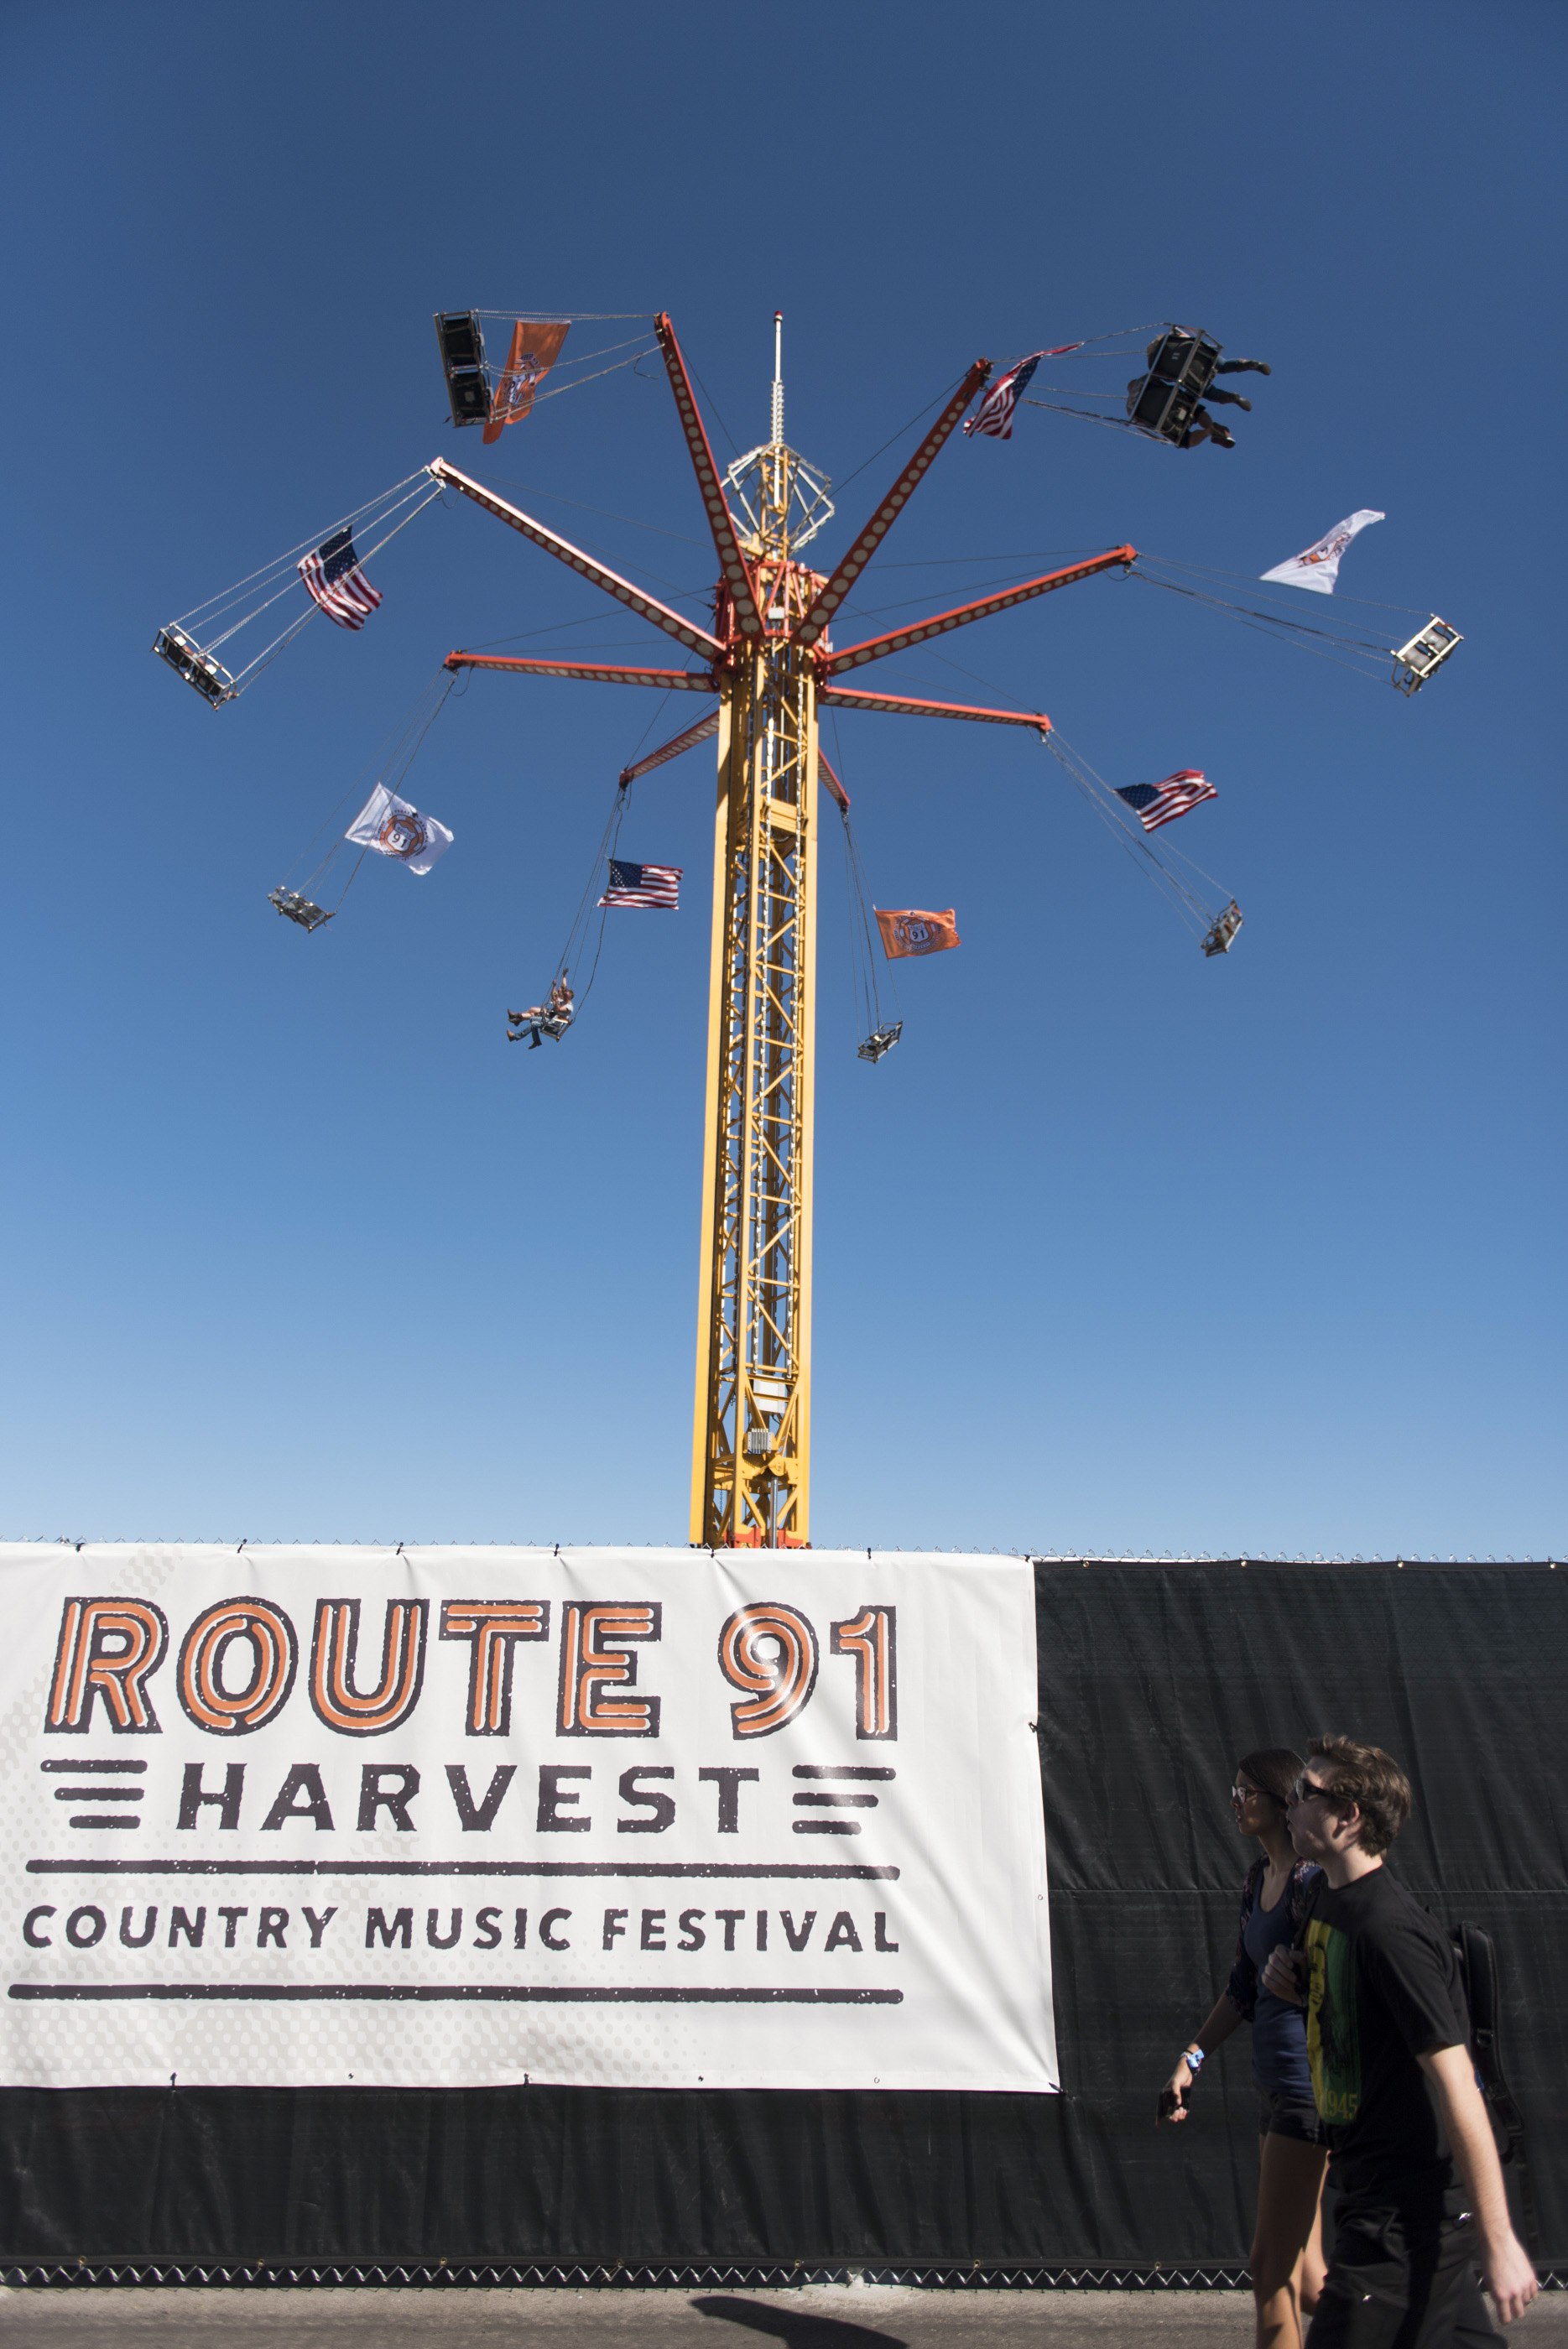 Concert goers arrive at the Route 91 Harvest Country Music Festival.